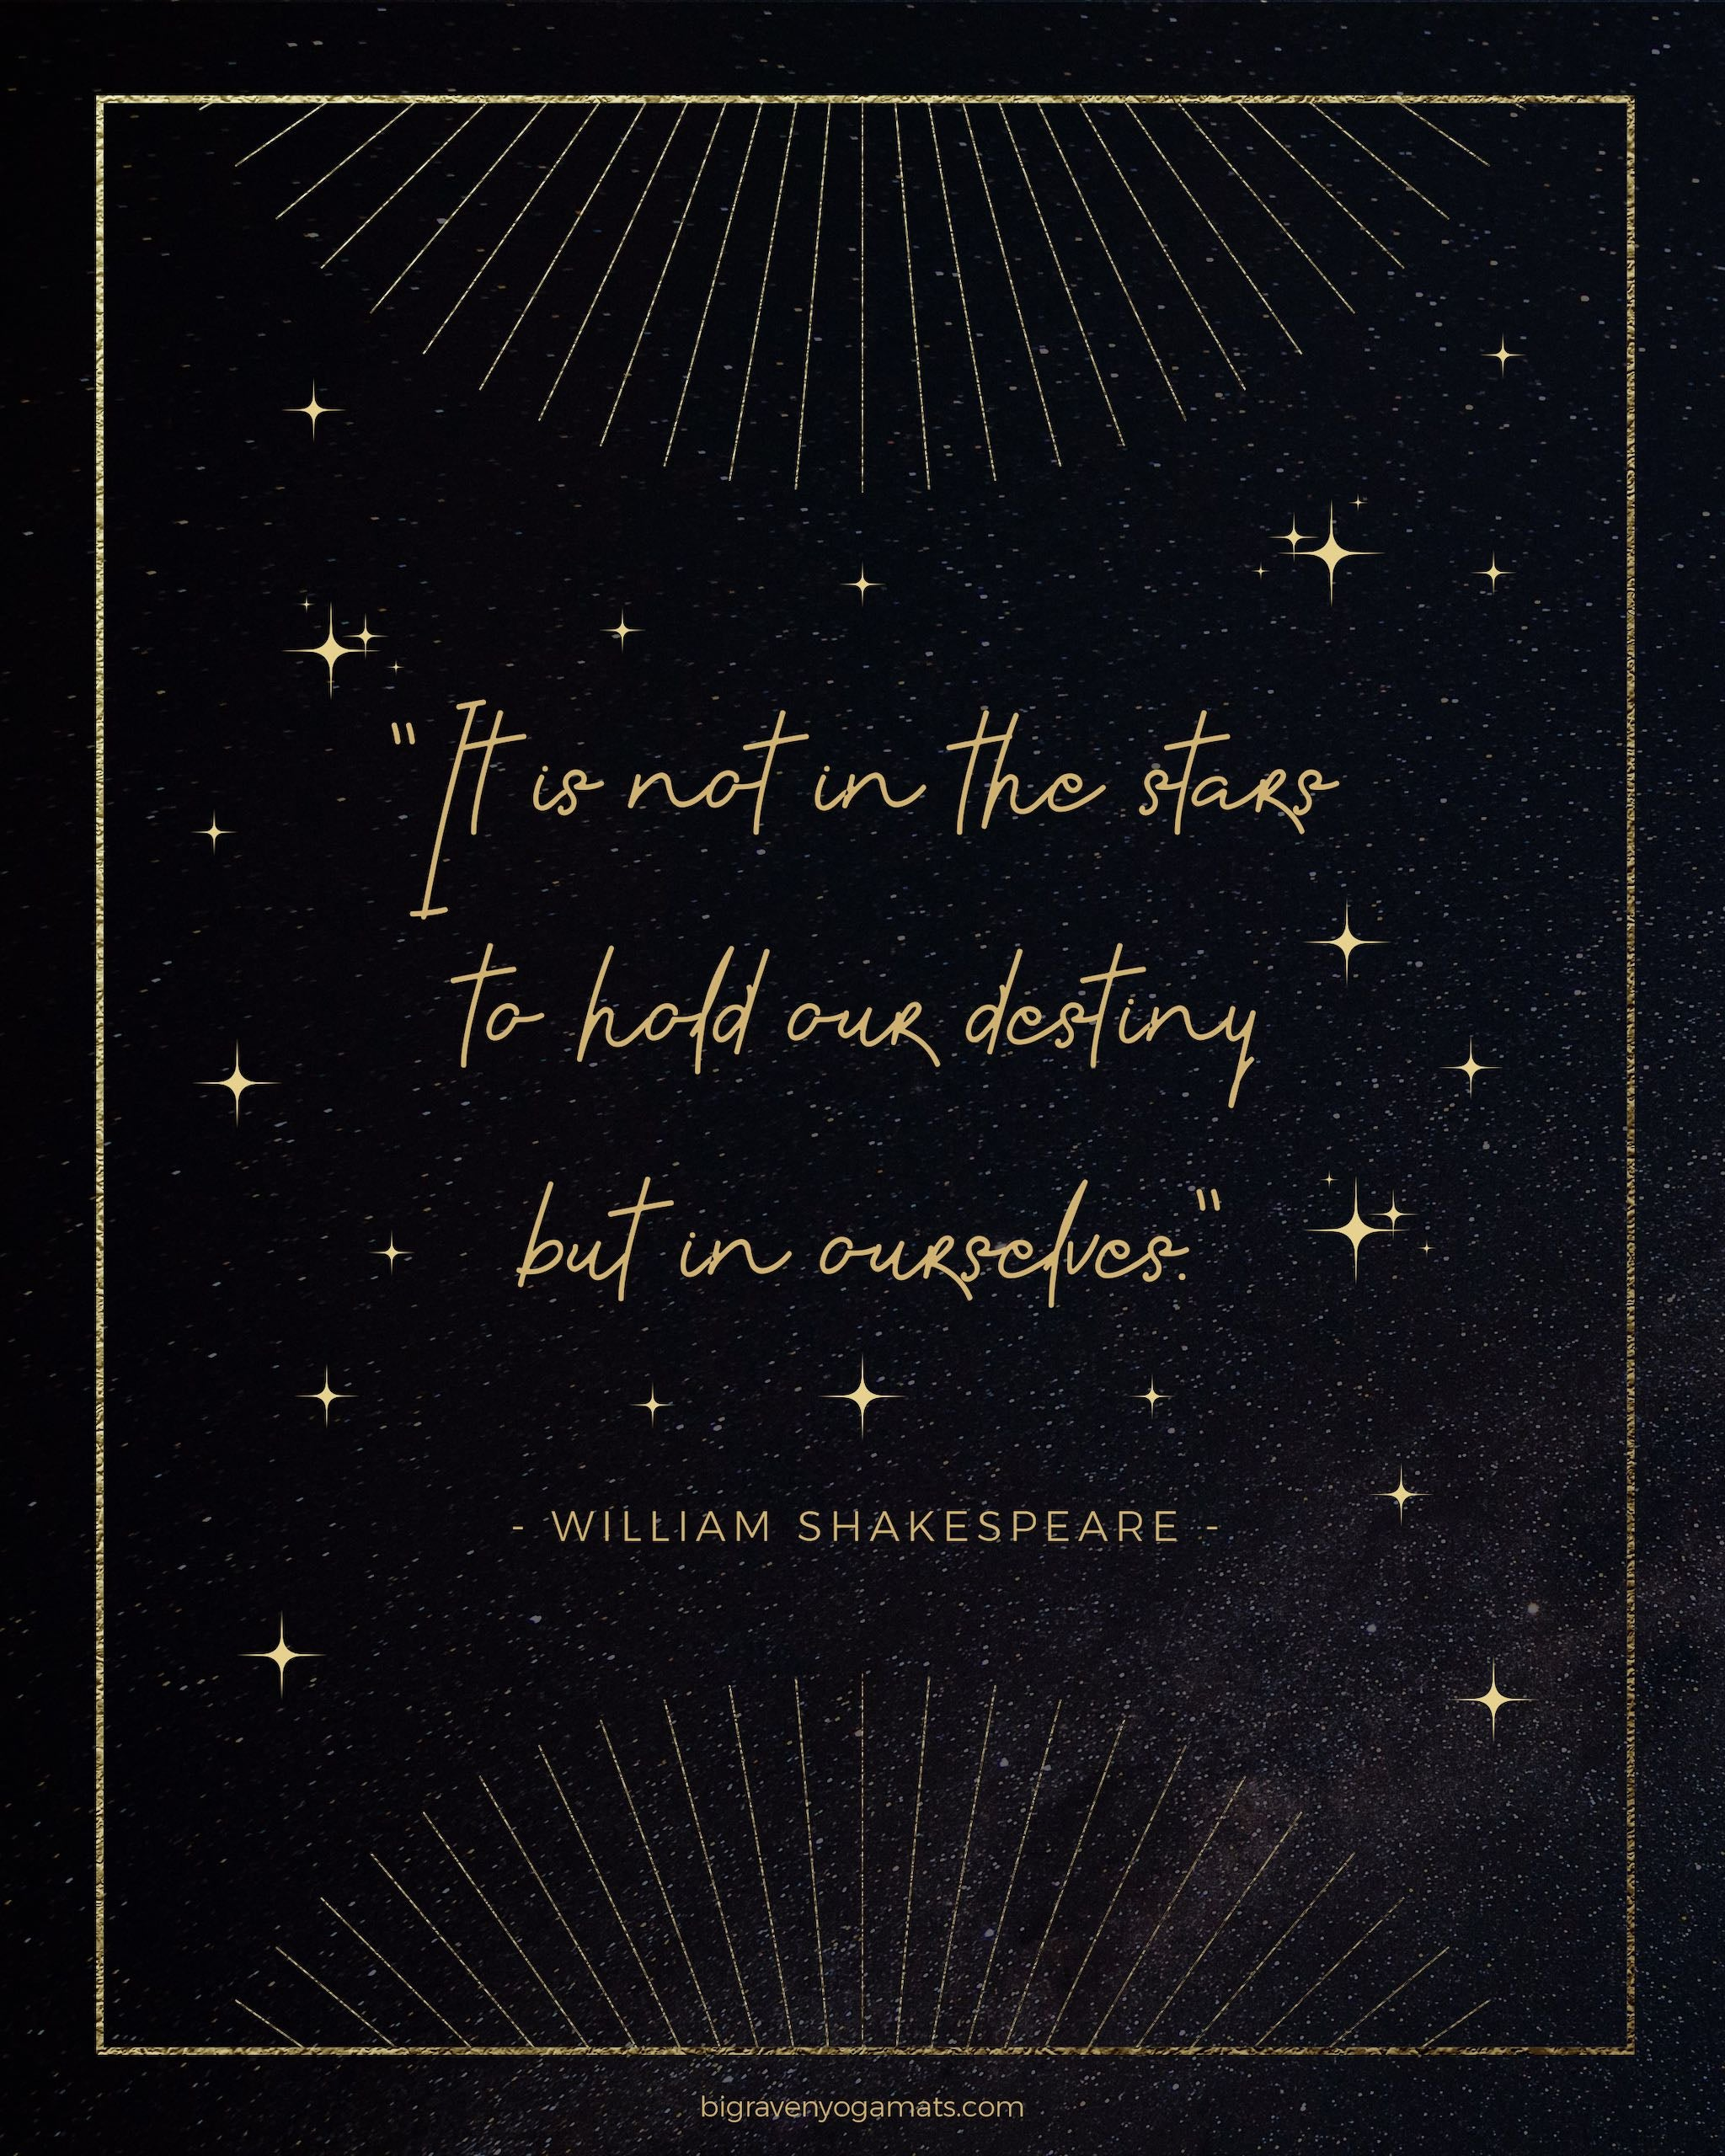 Quote: It is not in the stars to hold our destiny but in ourselves. William Shakespeare